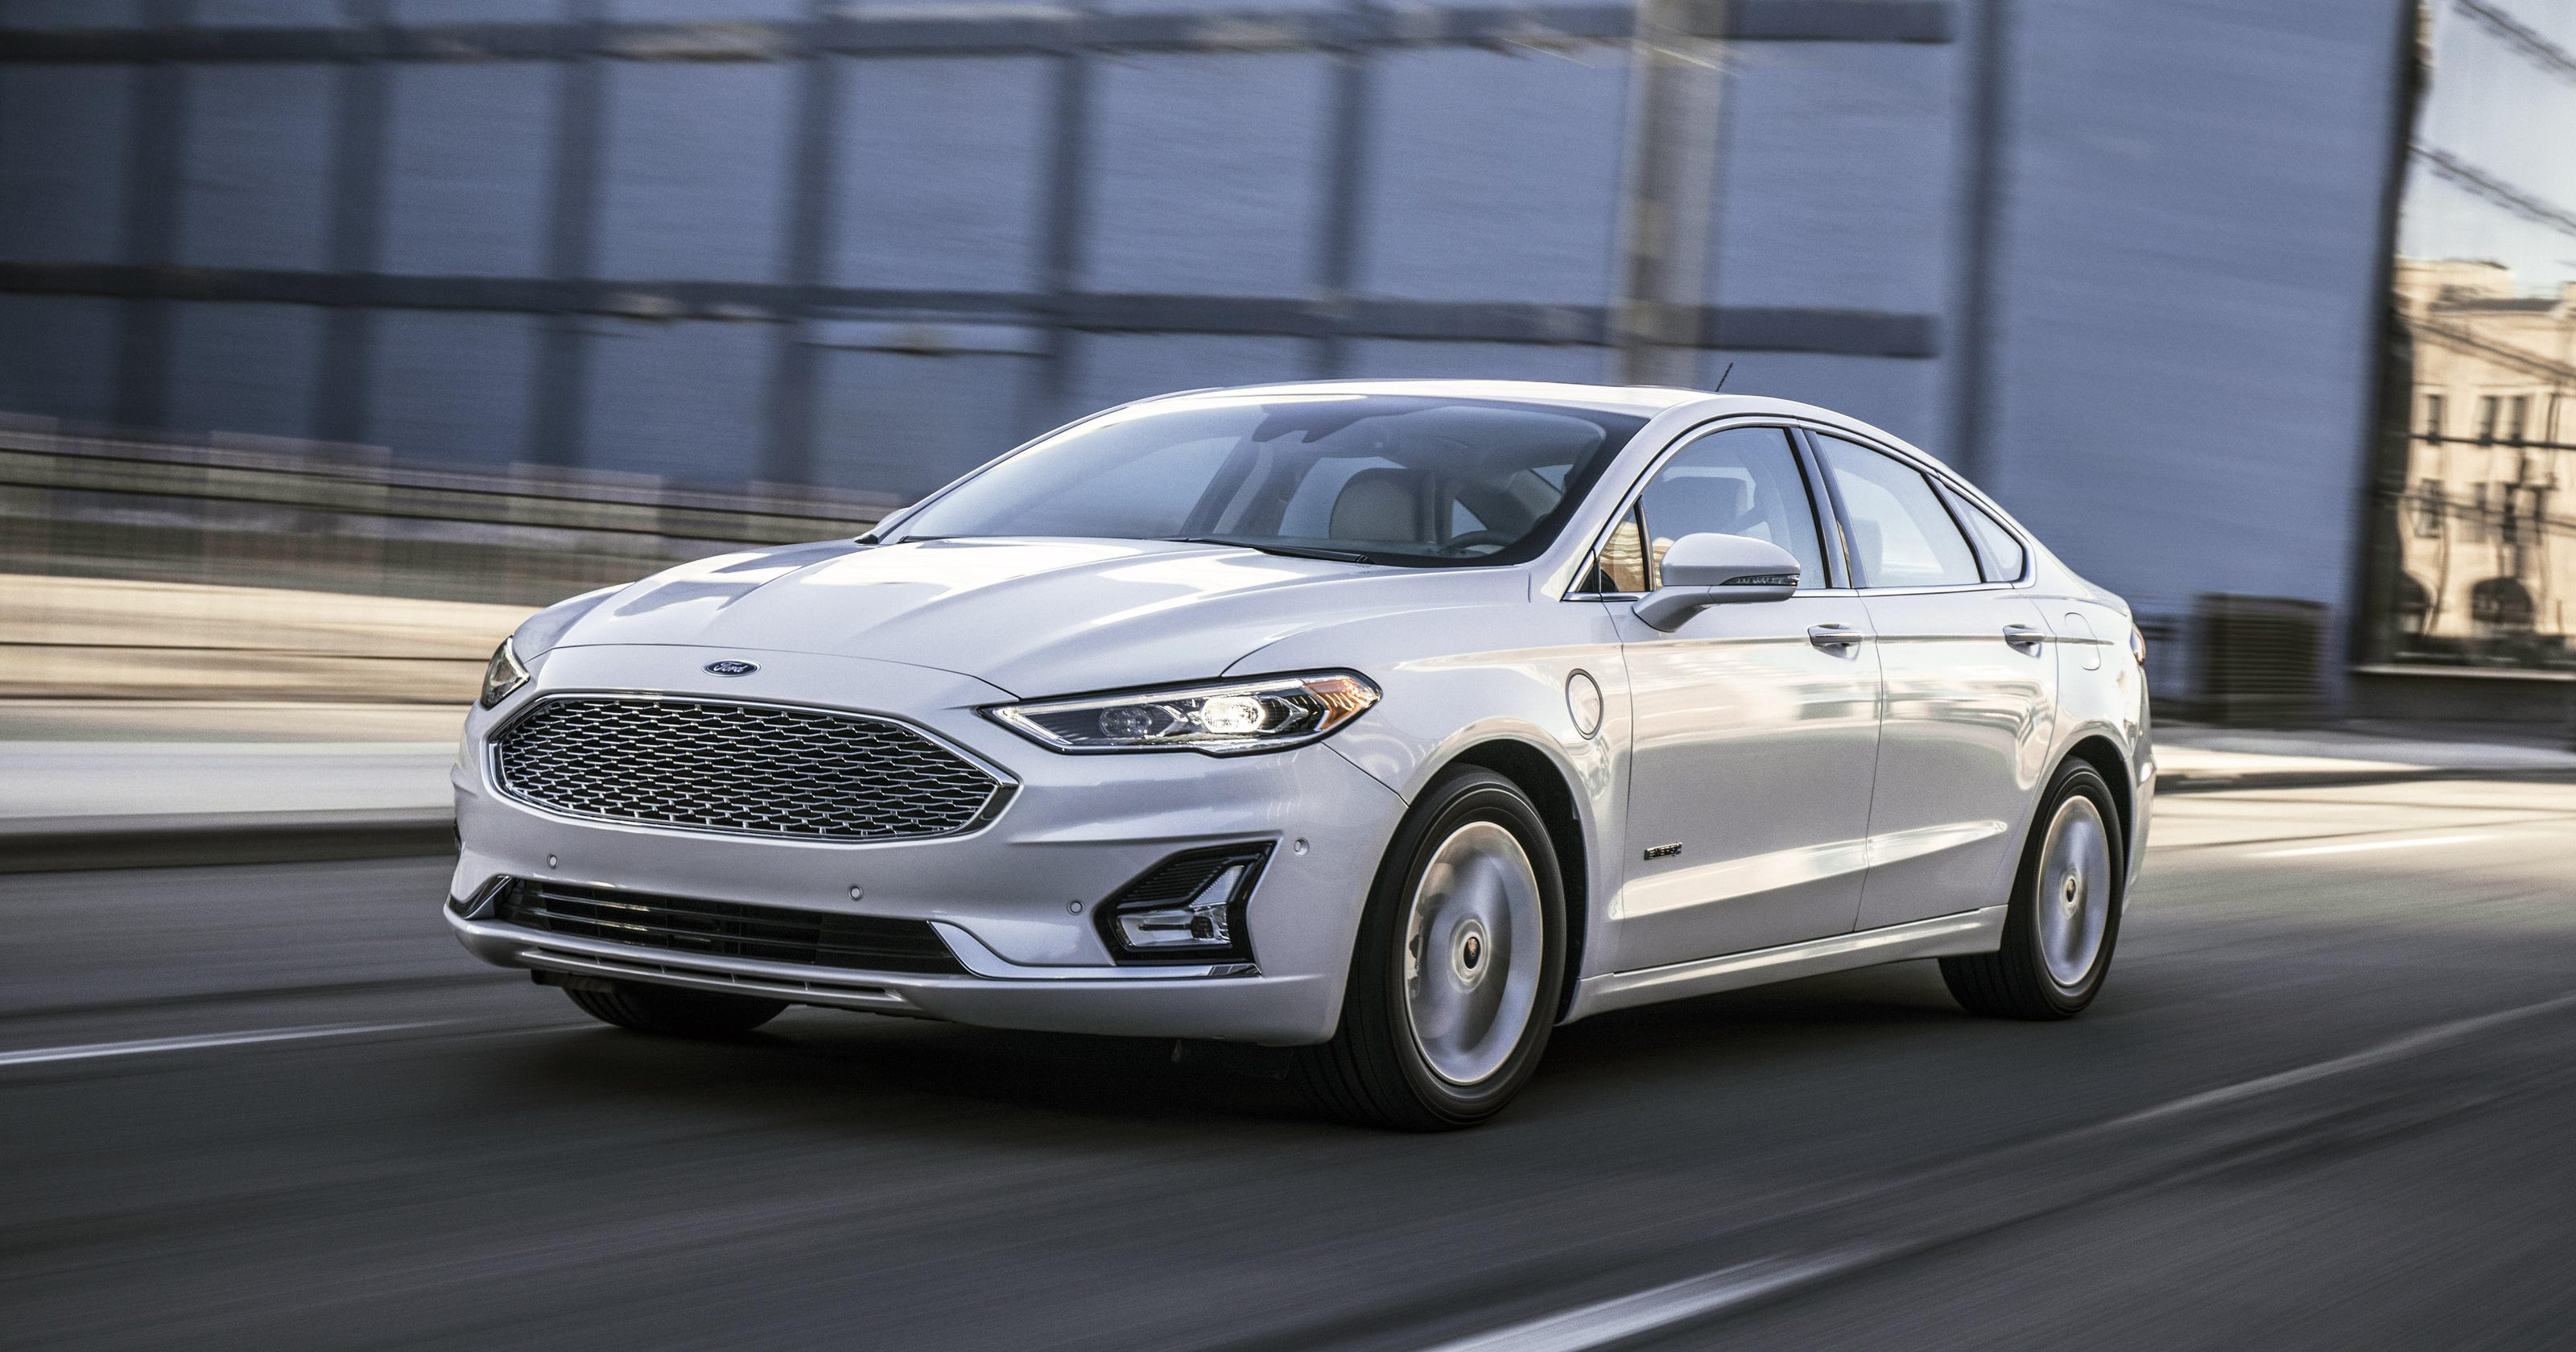 2019 Ford Fusion Adds Technology Trim Options